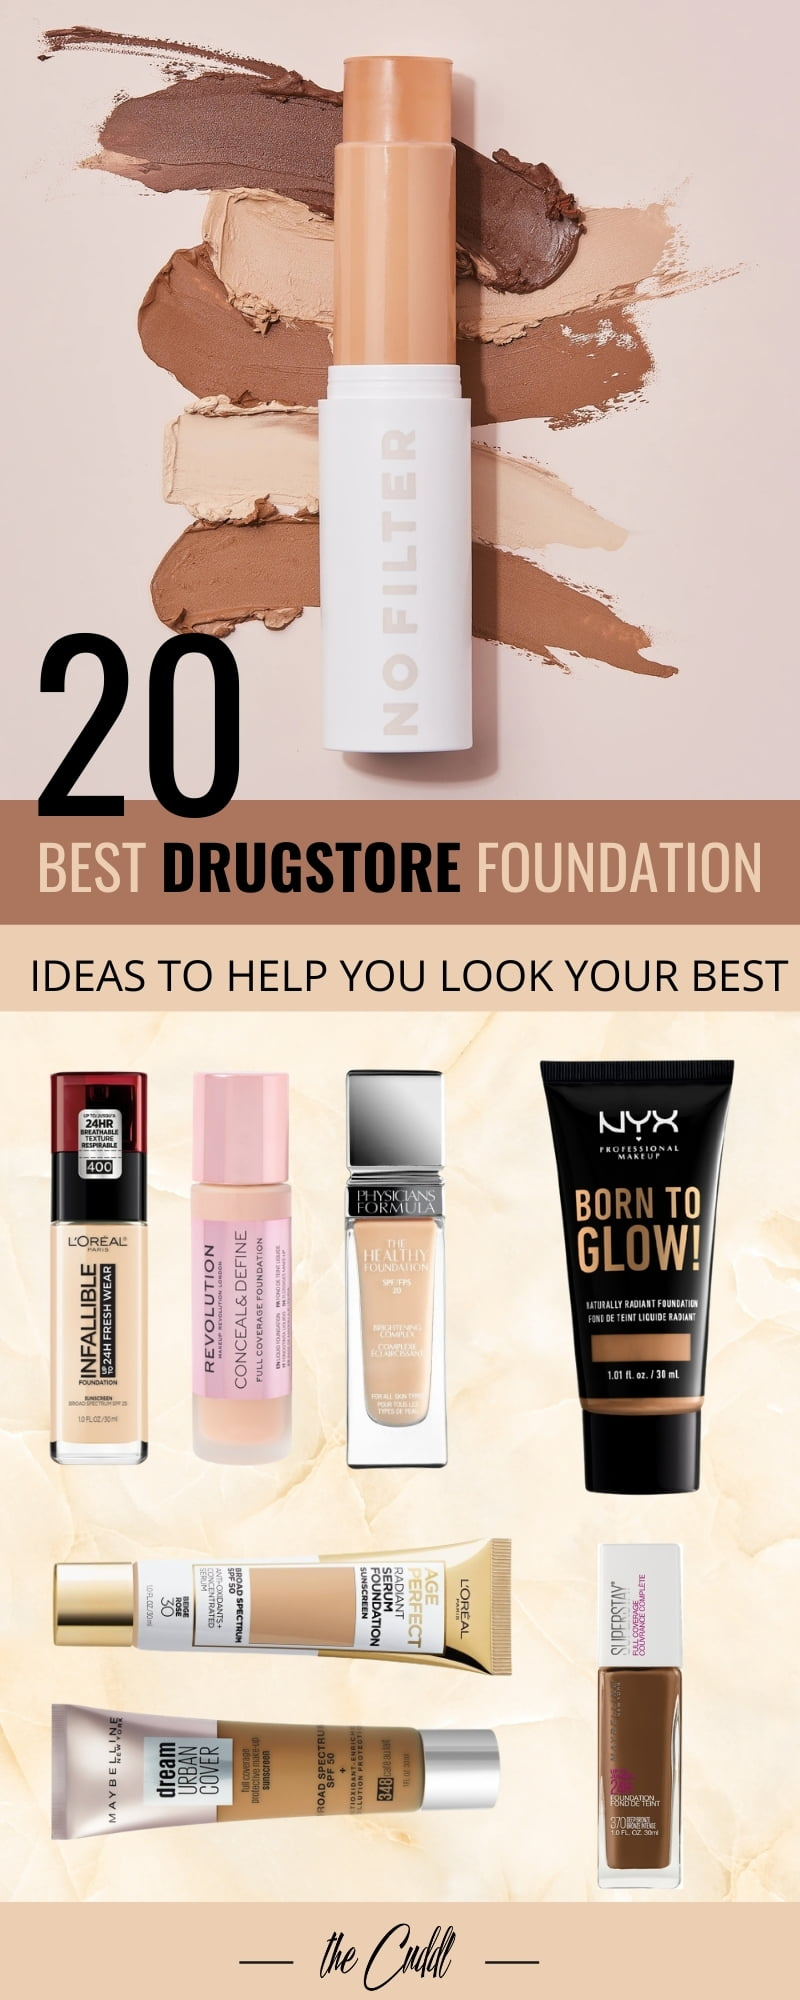 20 Best Drugstore Foundation Ideas To Help You Look Your Best In 2021